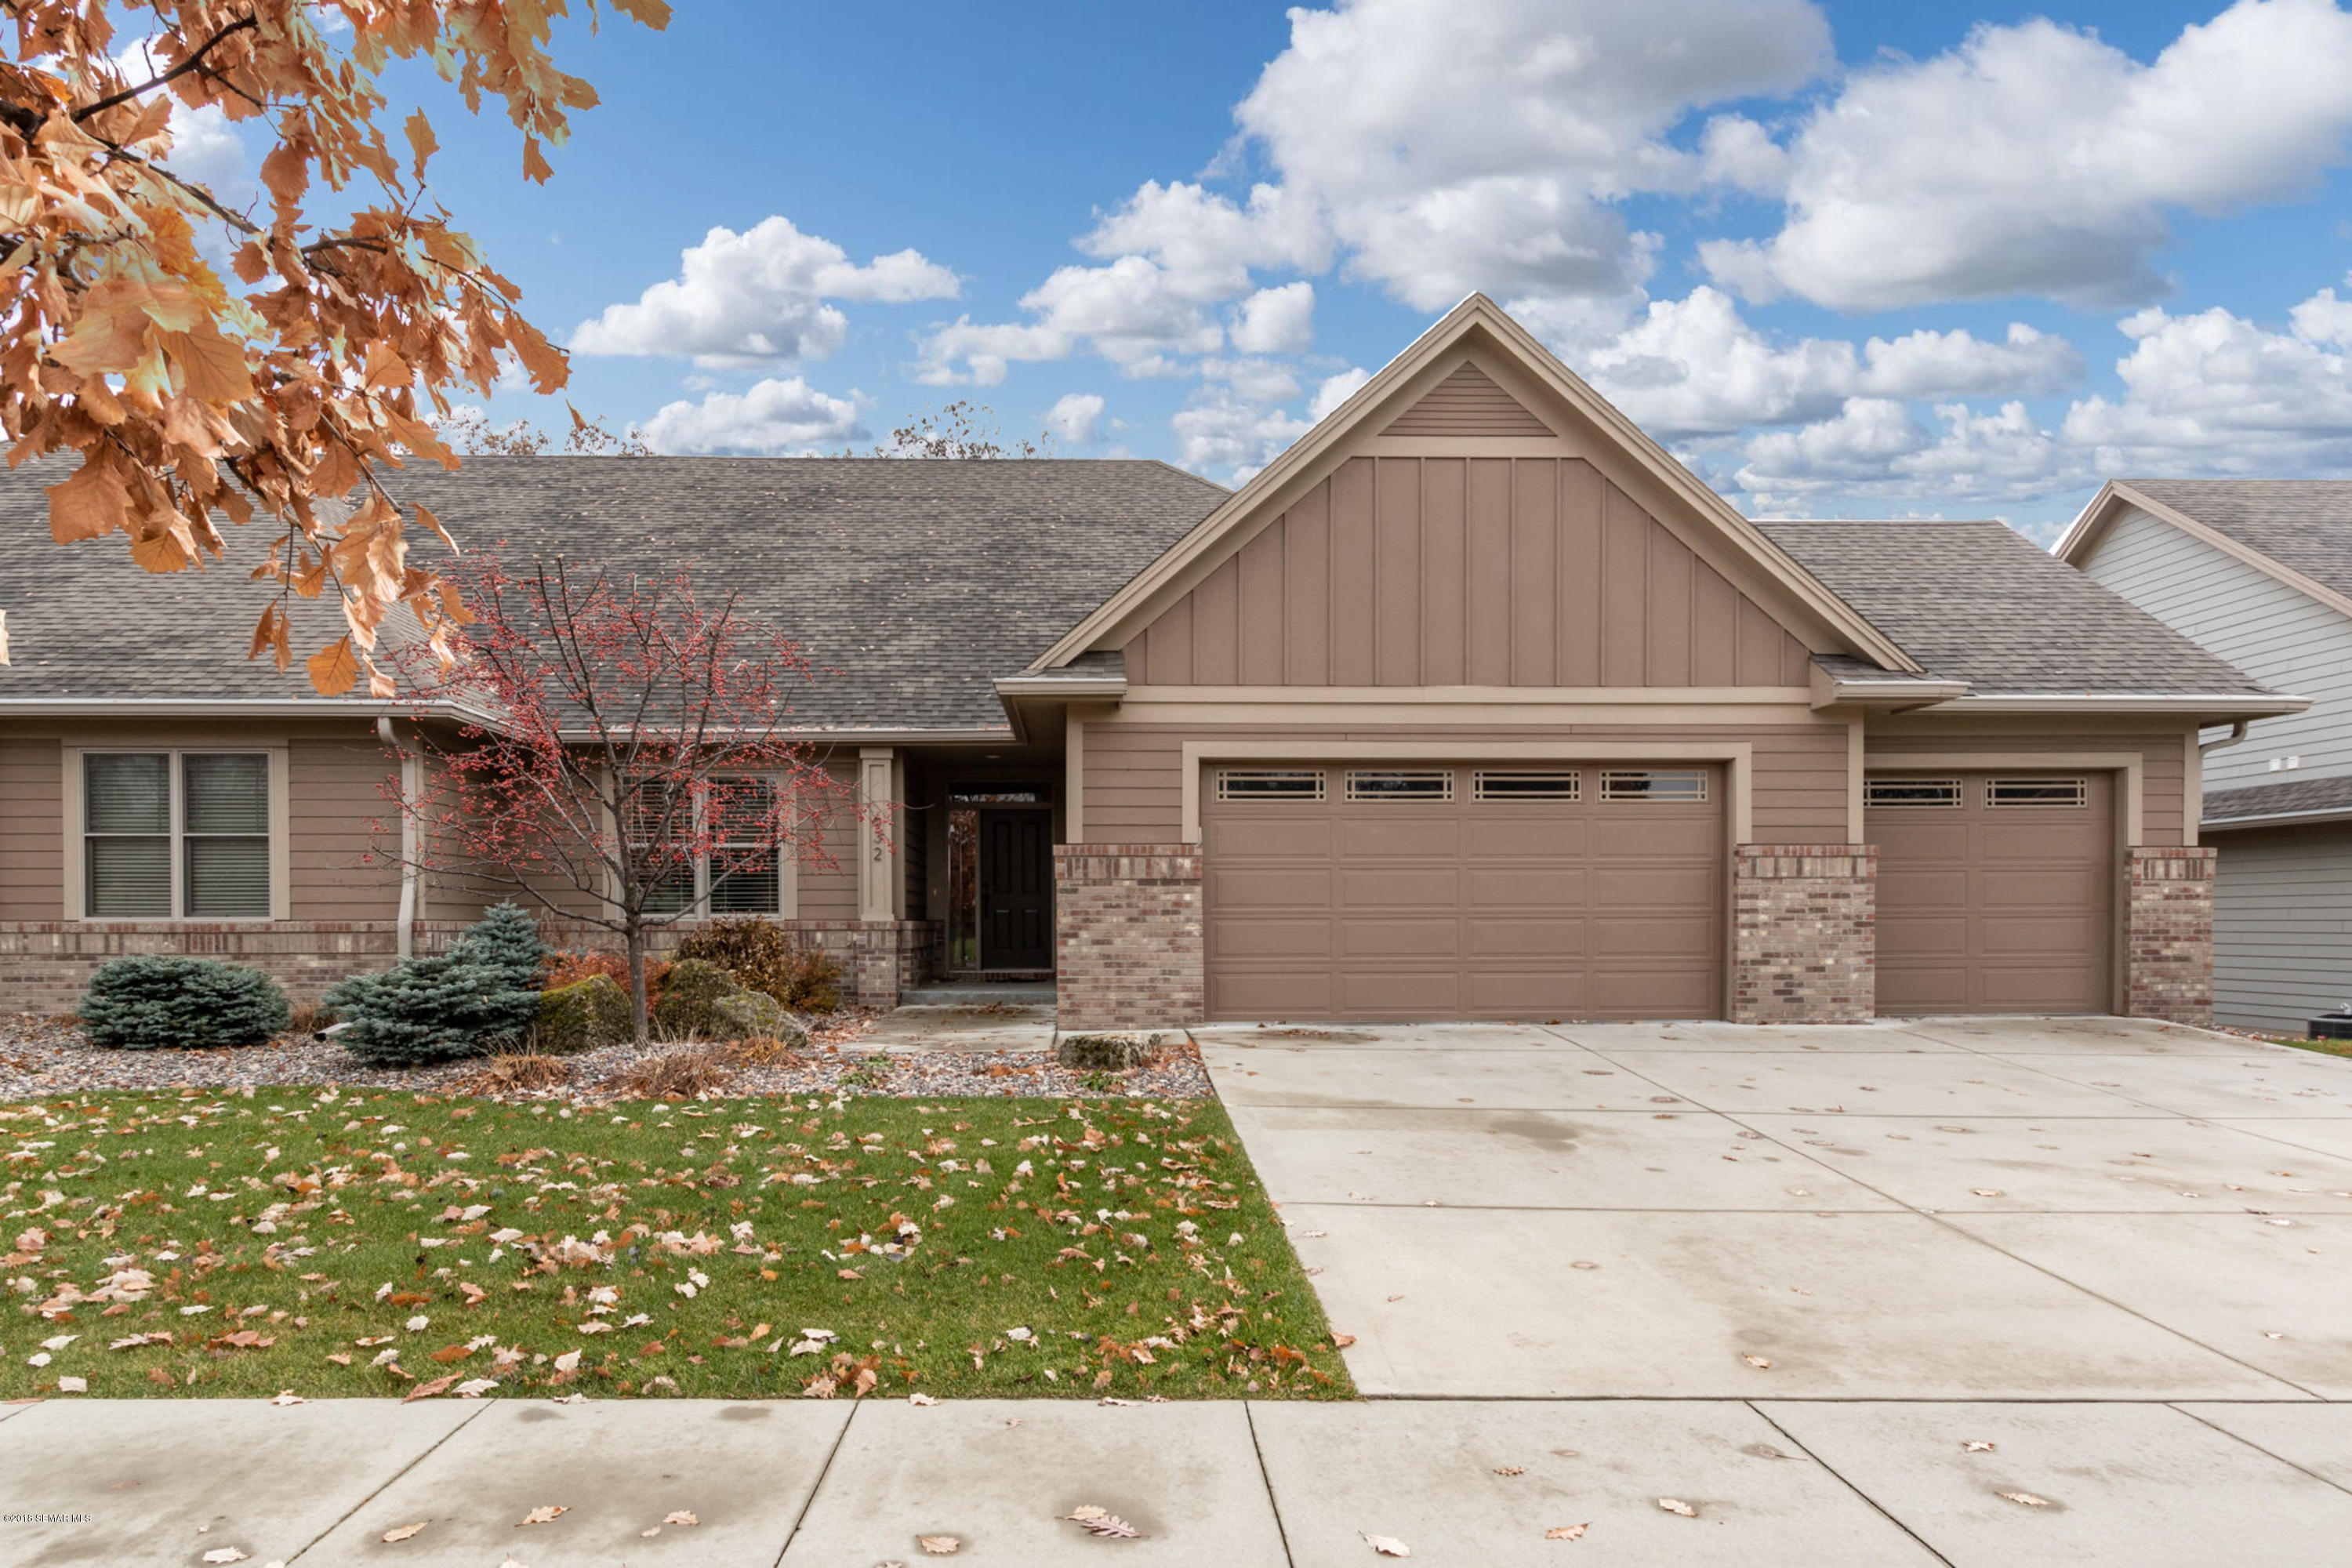 632 Fox Chase,Rochester,Minnesota 55902,4 Bedrooms Bedrooms,3 BathroomsBathrooms,Townhouse,Fox Chase,4092370